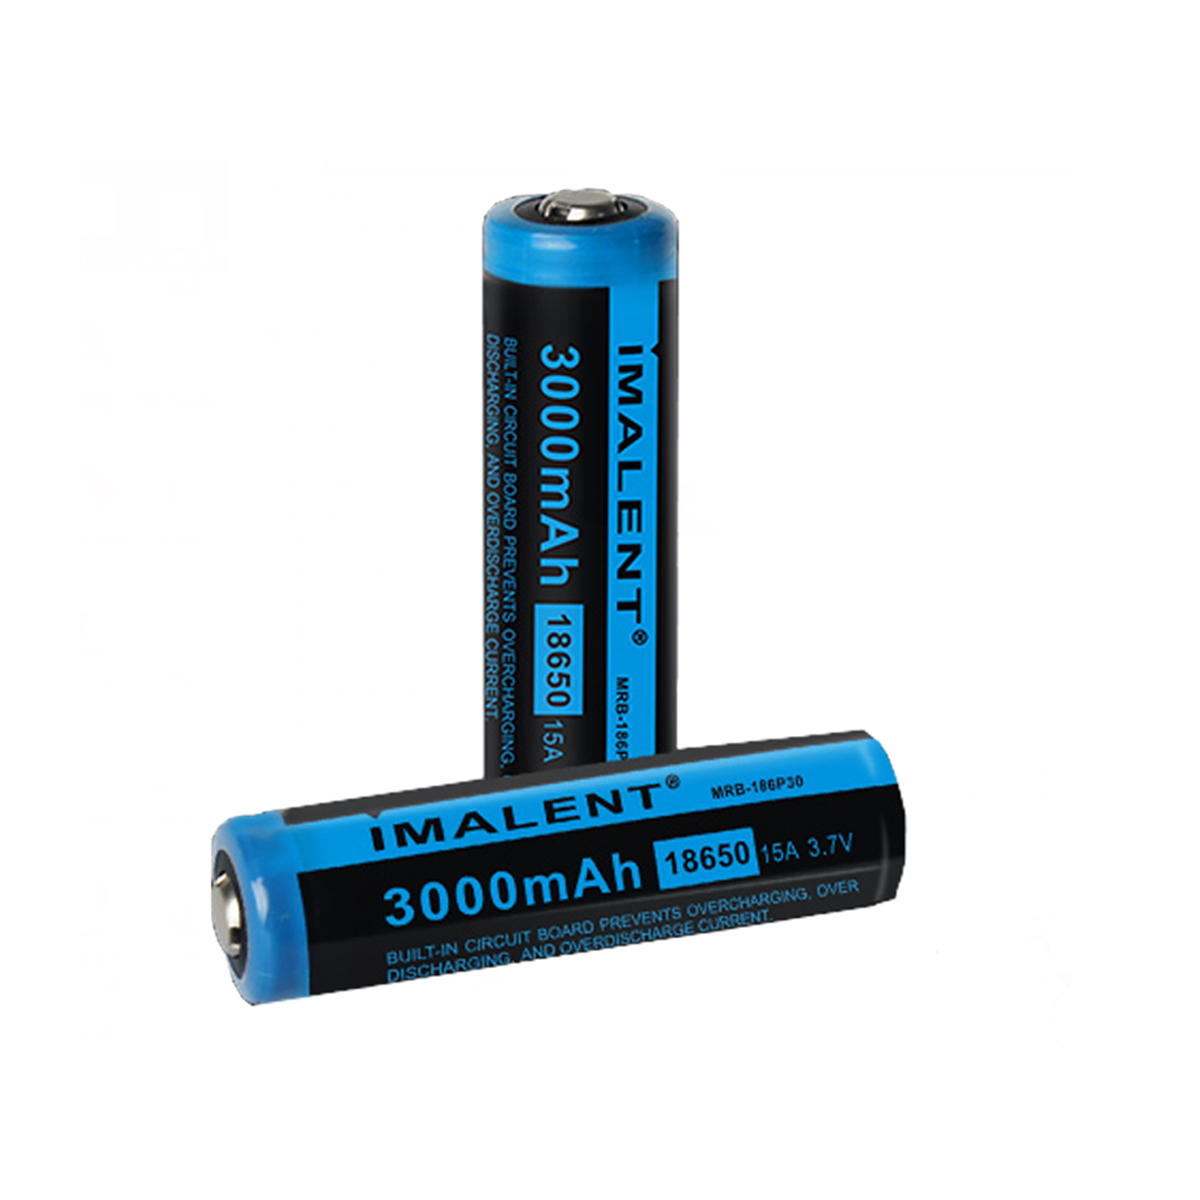 Imalent 18650 Battery Li-ion MRB-186P30 3000mAH Powerful Rechargeable Batteries Lighting Accessory For HR70/RT70/DT70/RT35